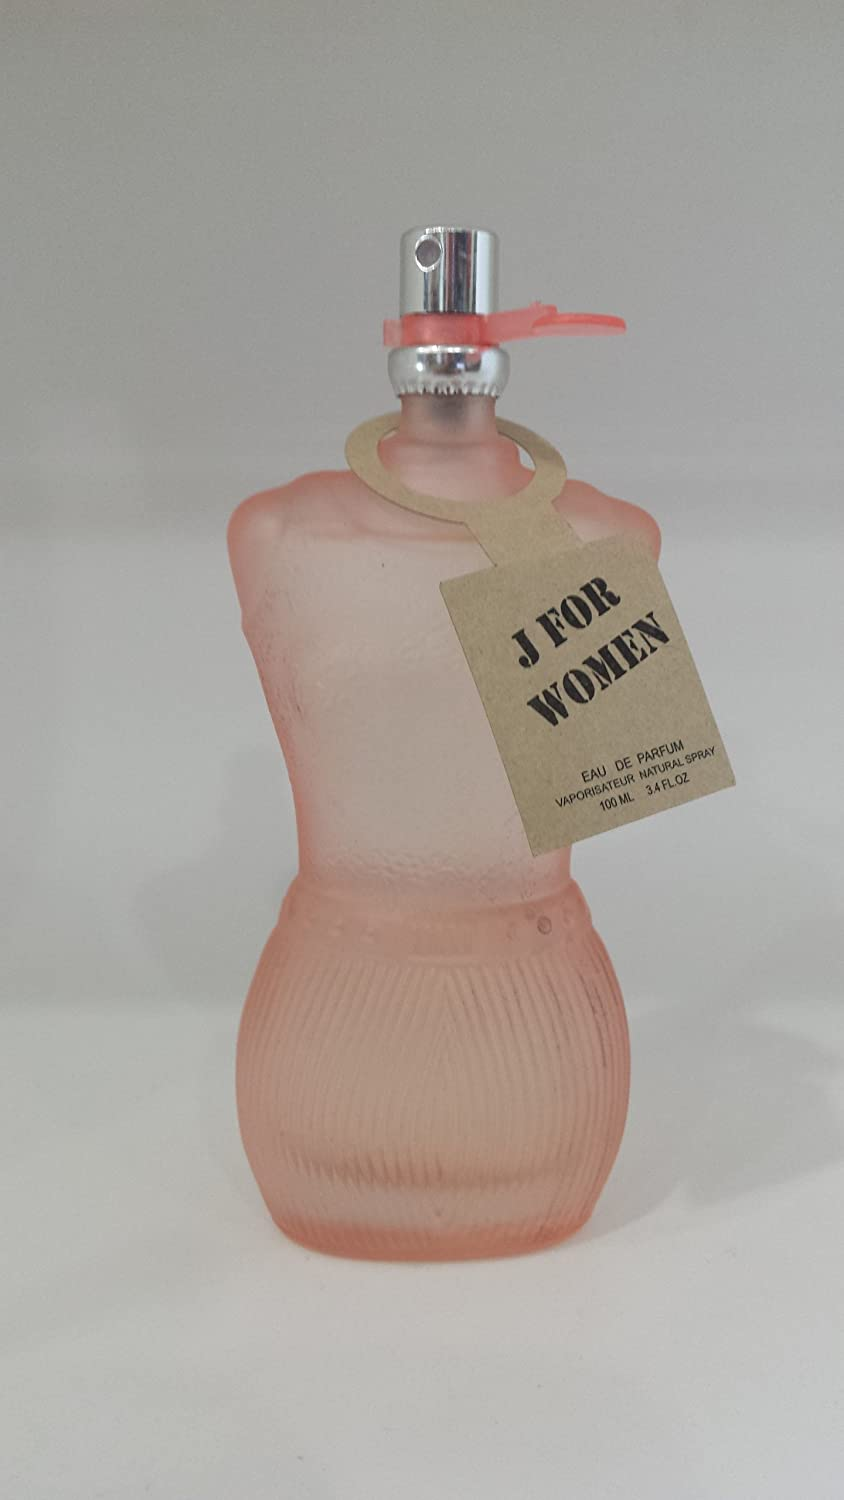 Amazon.com : J for Women ~ Our version of Jean Paul Gaultier for Women : Beauty